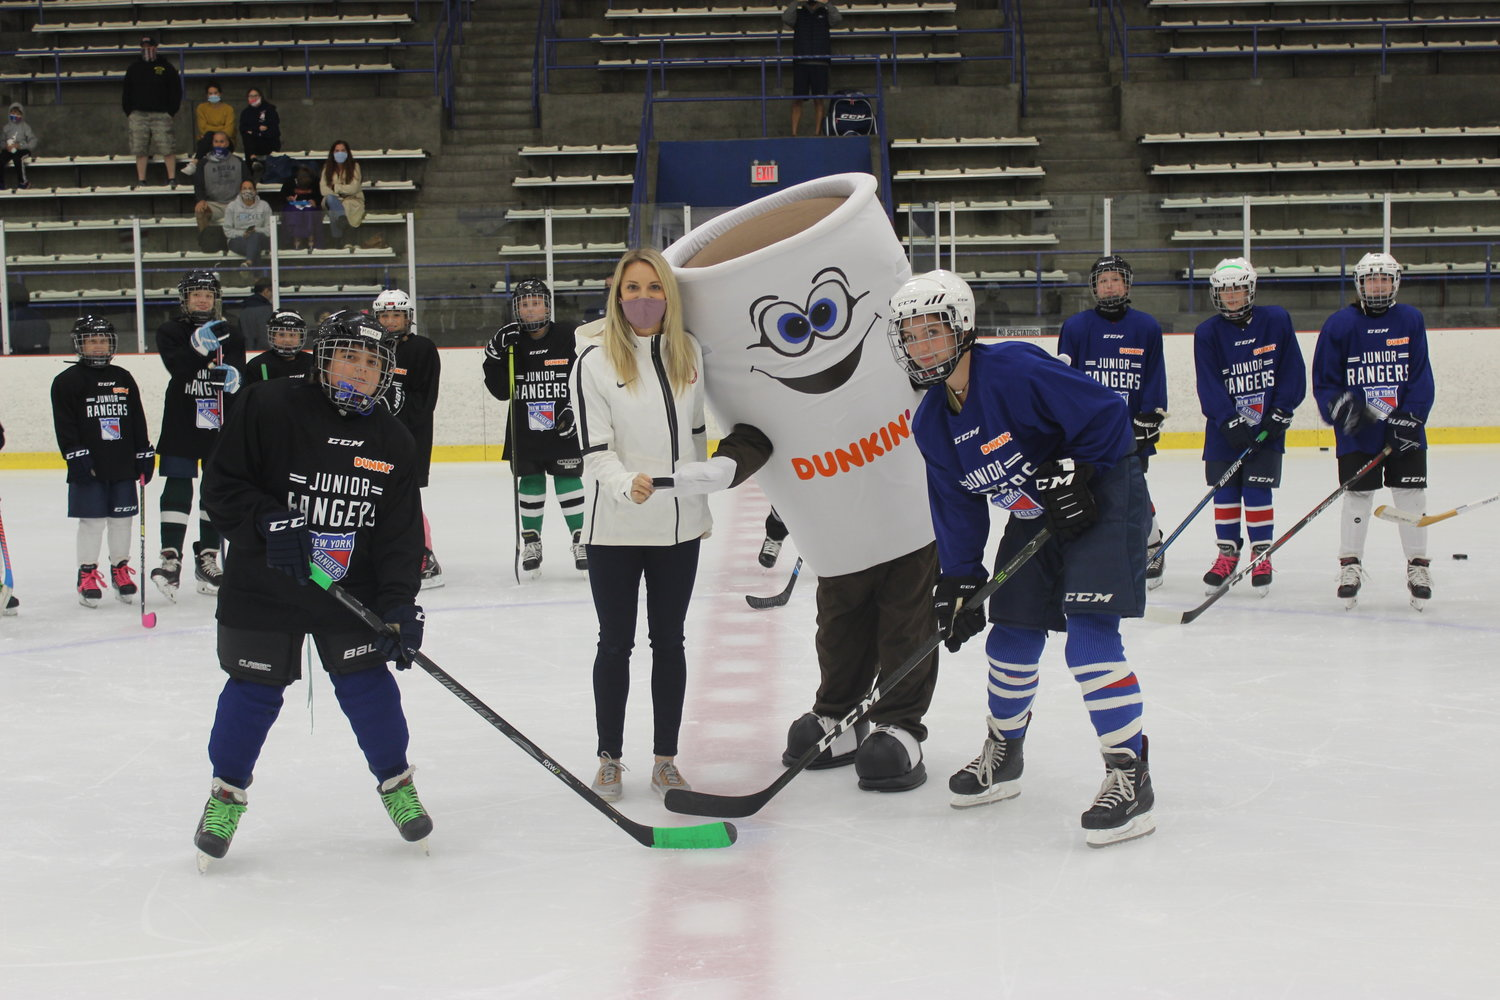 U.S. Olympian Amanda Kessel joined the Junior Rangers Girls' Hockey at the Long Beach Arena for a skills session on Oct. 16. Kessel is a key ambassador of the program.